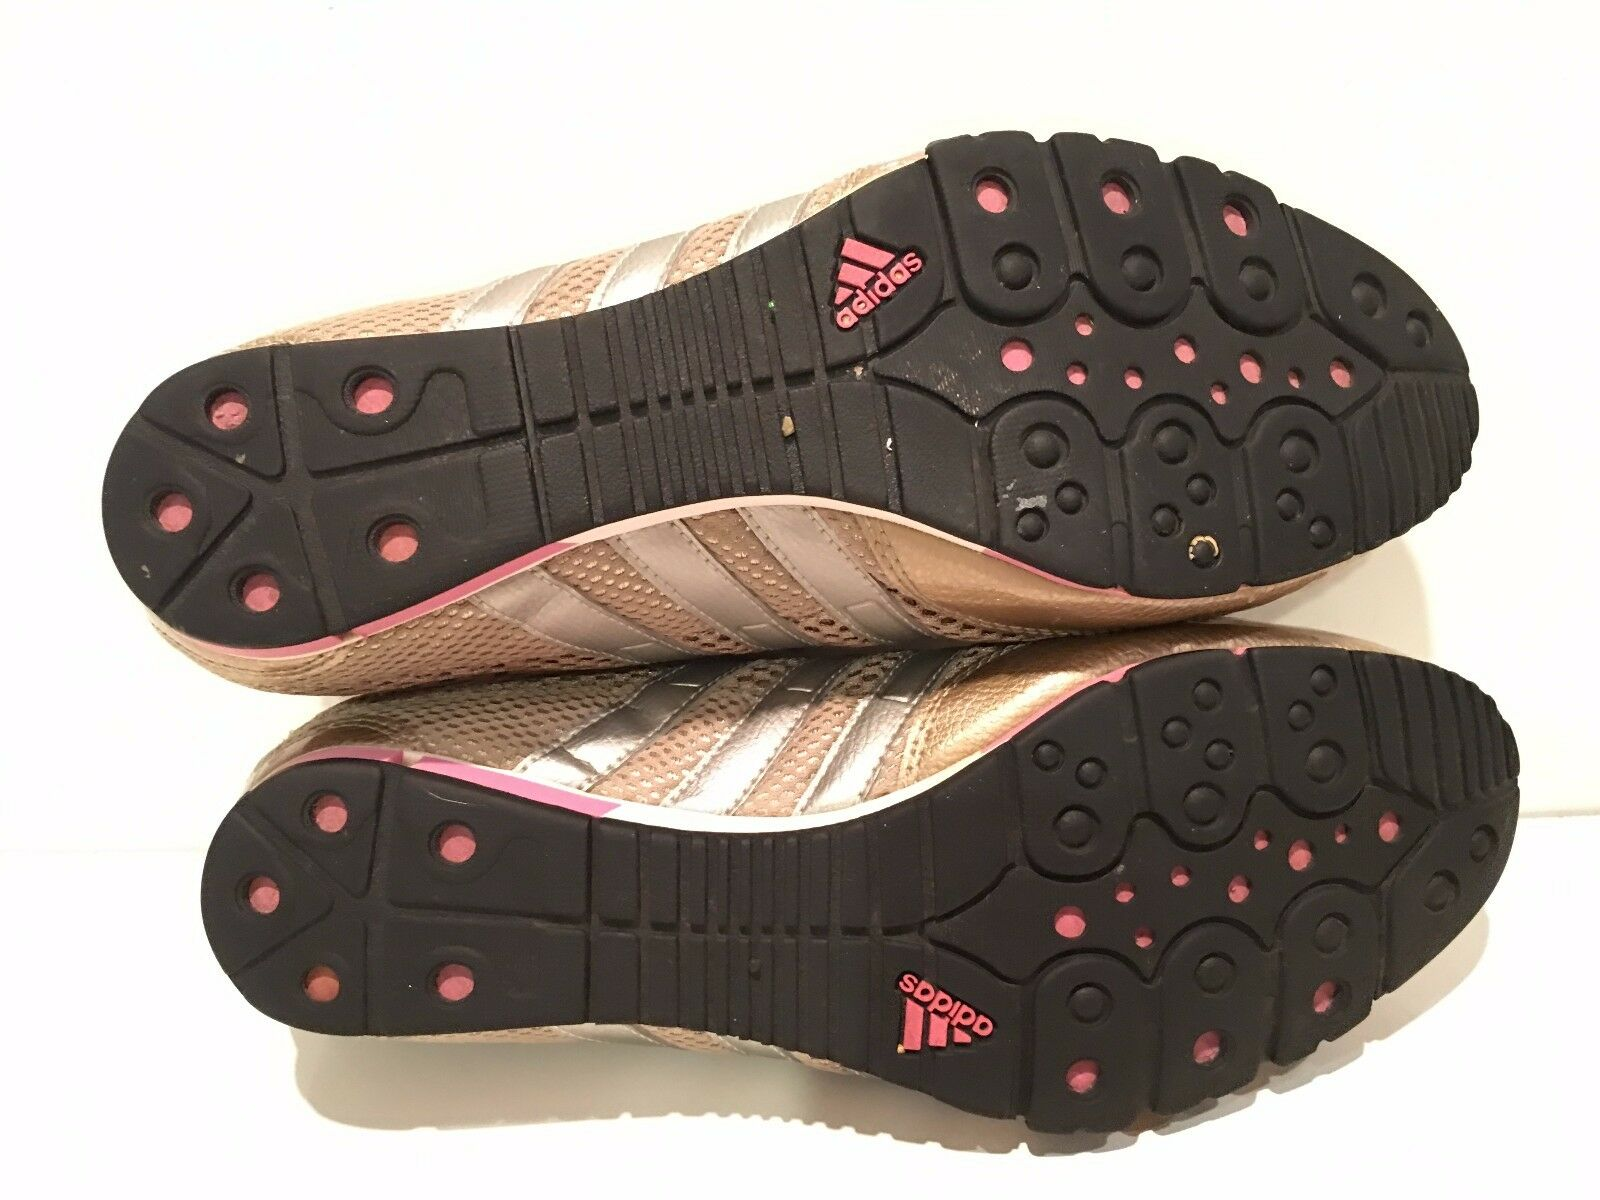 adidas amiya formation formation formation athlétique baskets chaussures taille femmes 9,5 m | Sortie  8dd716